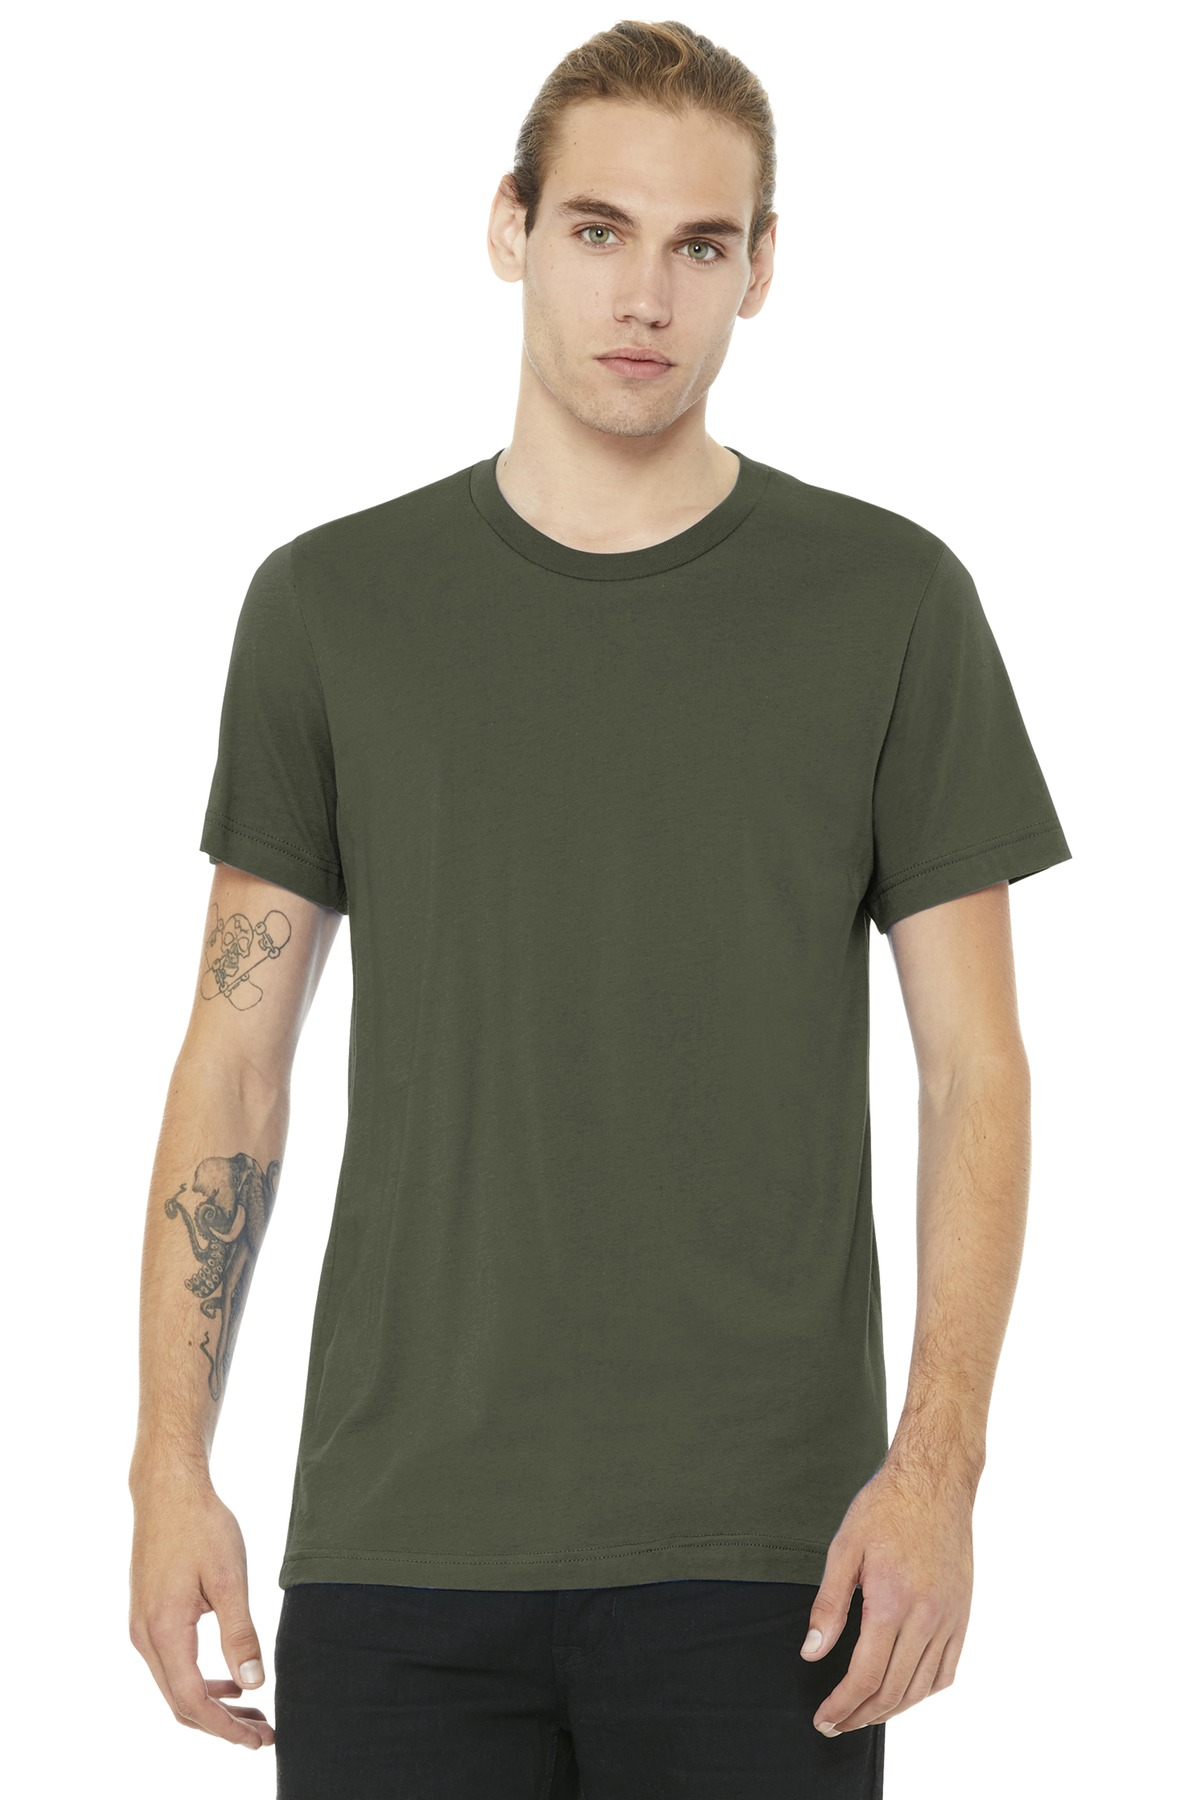 BELLA+CANVAS  ®  Unisex Jersey Short Sleeve Tee. BC3001 - Army